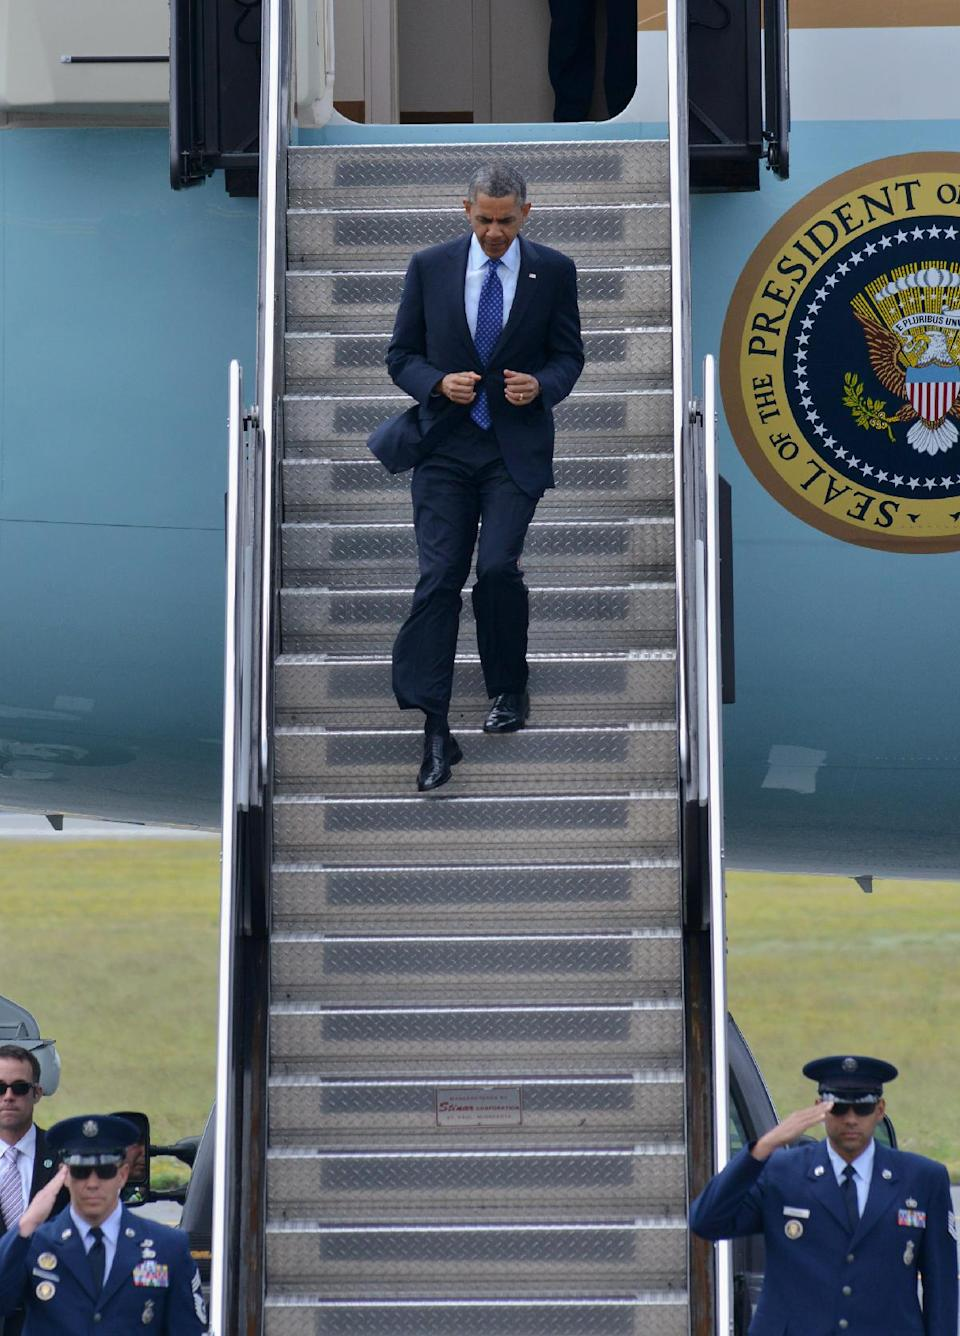 President Barack Obama departs Air Force One at Logan International Airport in Boston, Wednesday, June, 12, 2013, where he was scheduled to attend a fundraiser and rally for Senate candidate, Rep. Ed Markey, D-Mass. (AP Photo/Josh Reynolds)